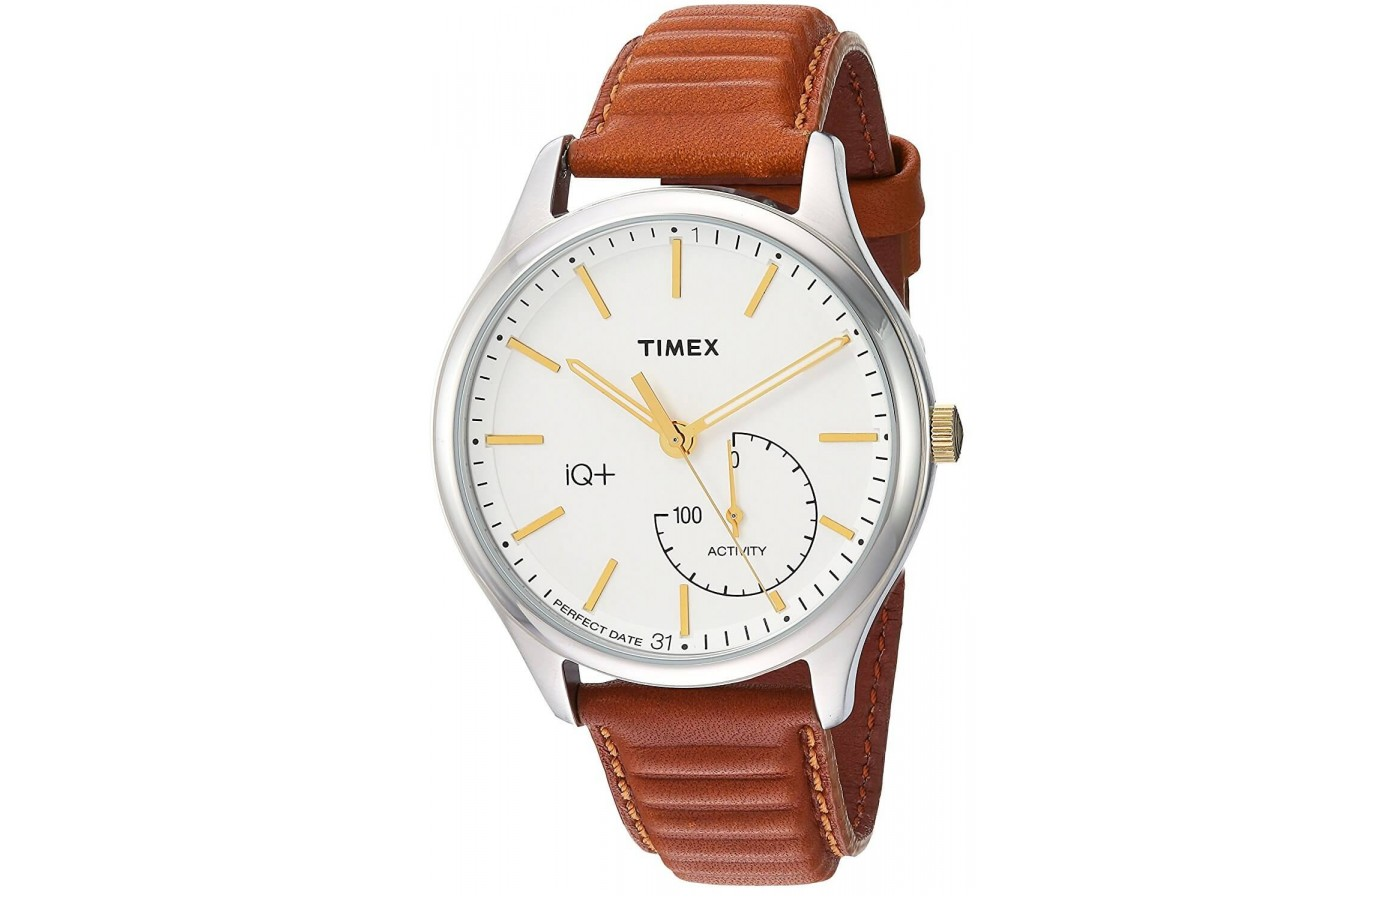 The Timex IQ + Move provides daily fitness tracking including sleep monitoring